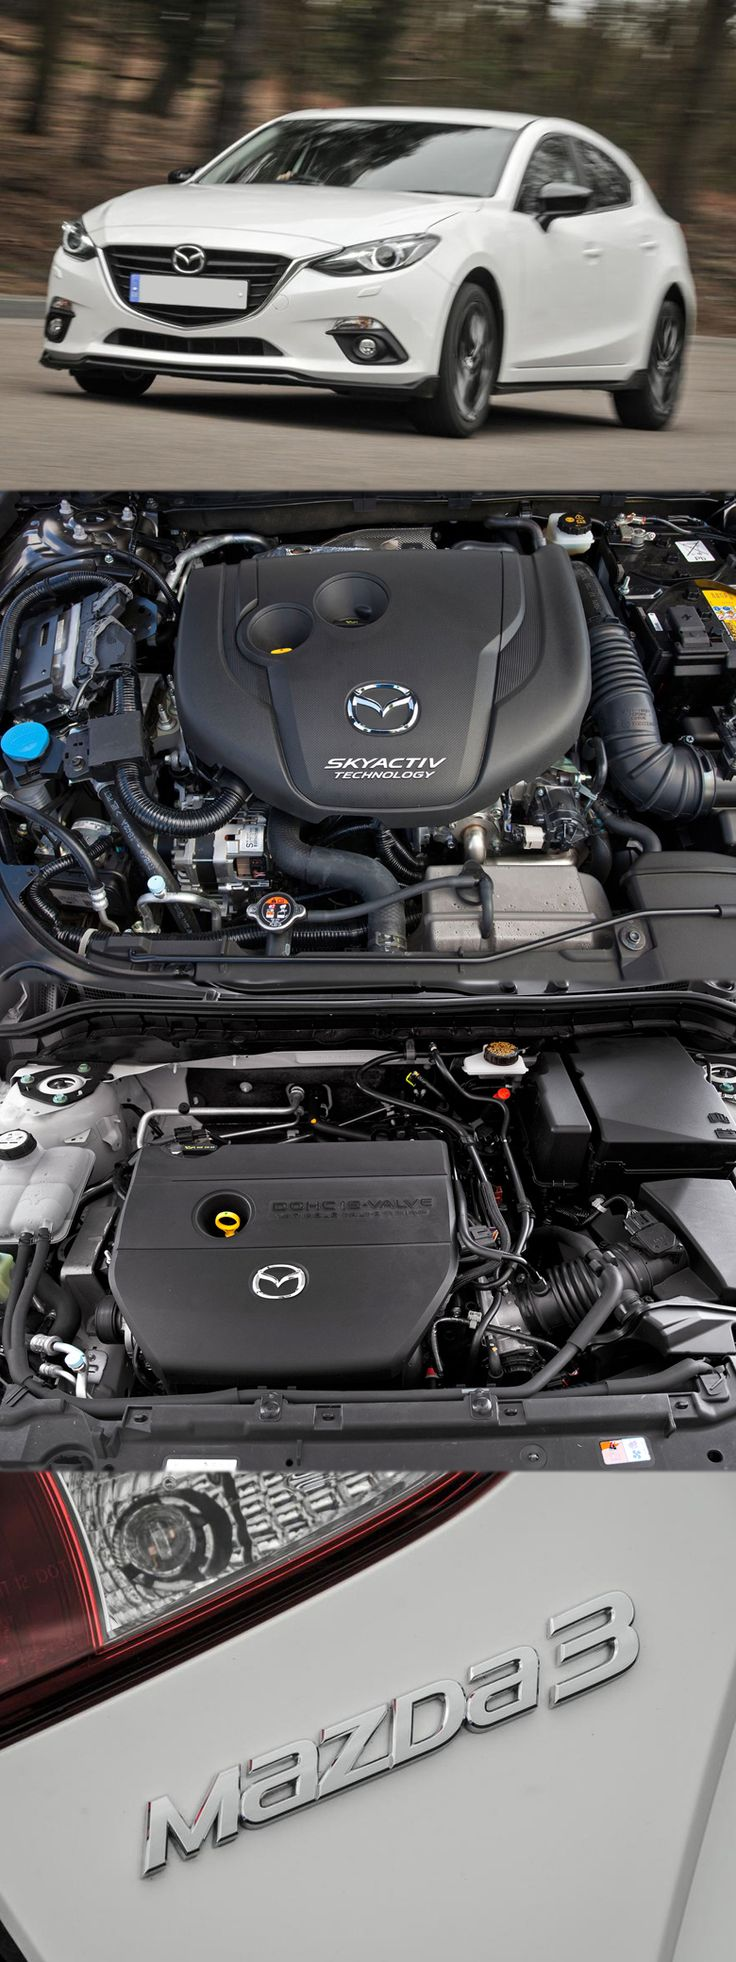 Mazda 3 Sport Black has 2.0-litre Skyactiv-G Petrol Engine For more details: https://www.enginetrust.co.uk/series/mazda/3/engines